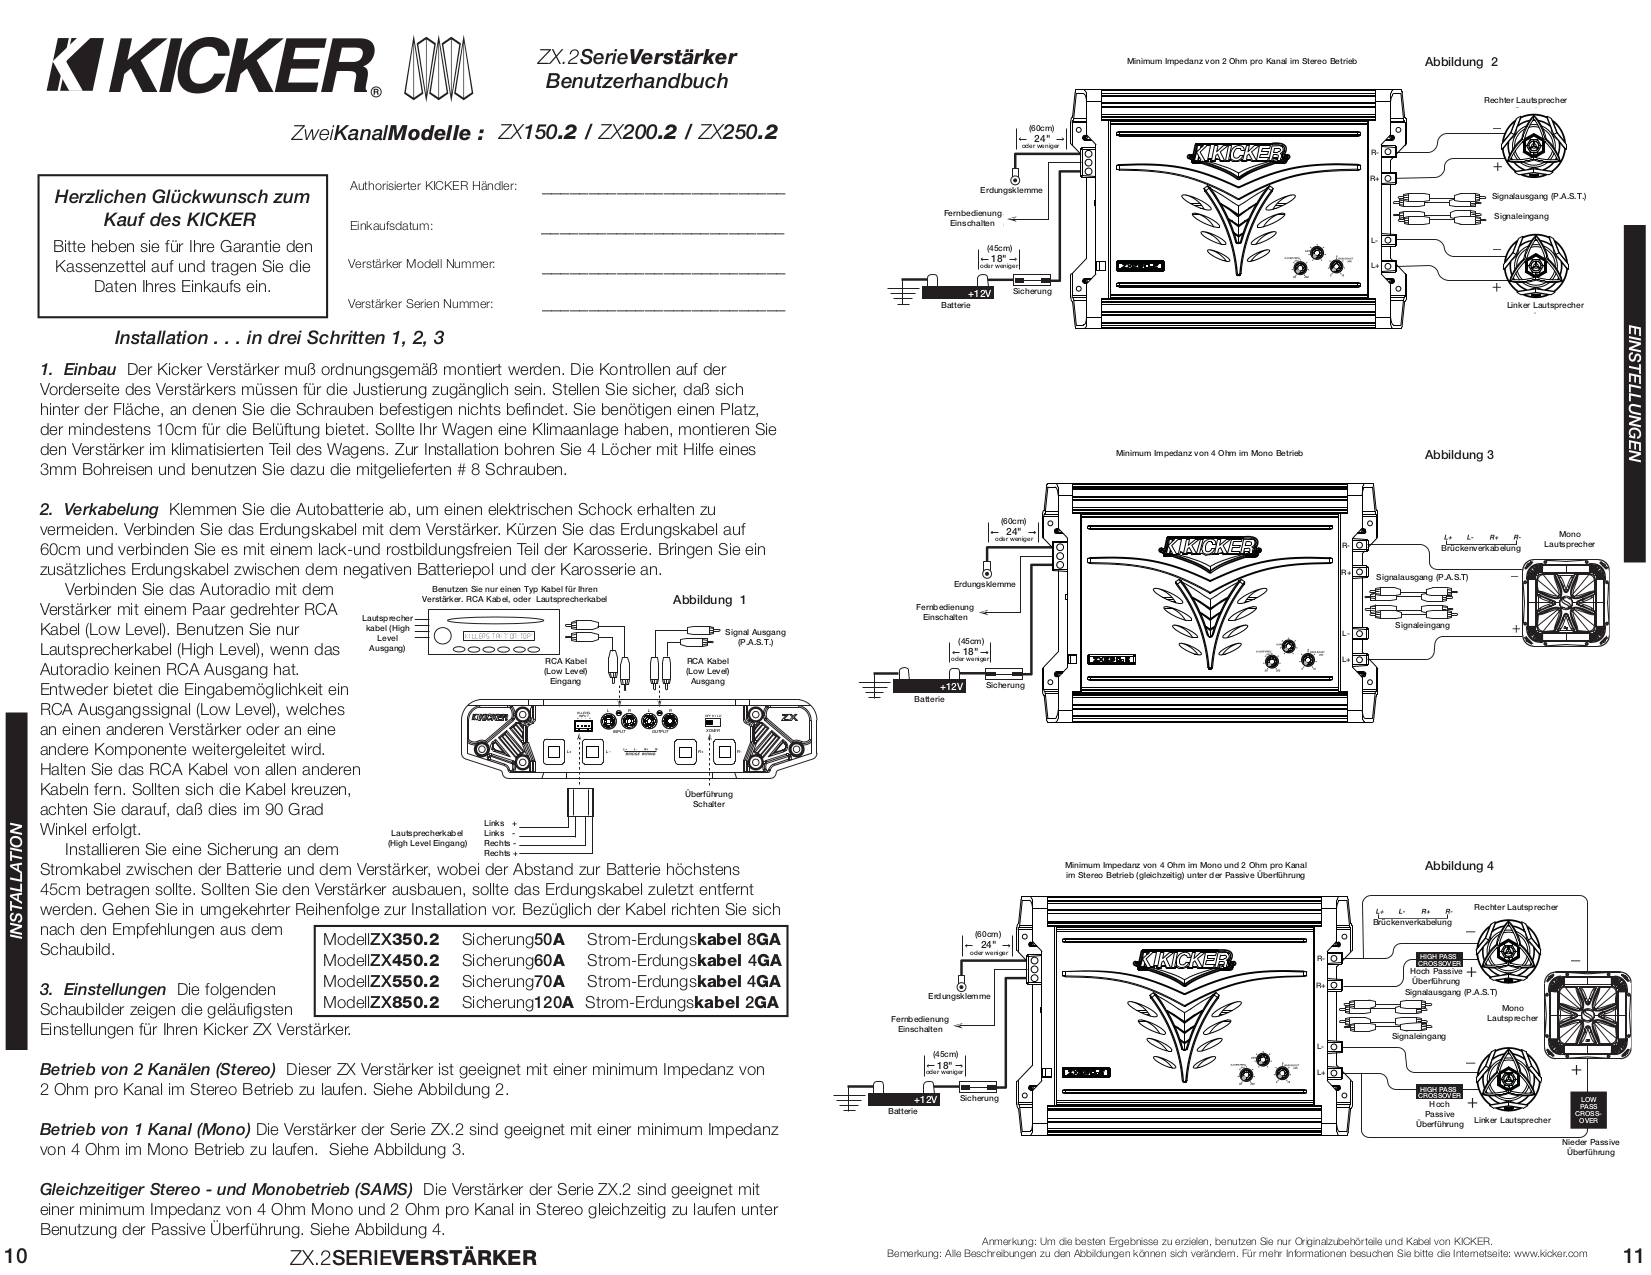 Kicker Pxa300.4 Wiring Diagram